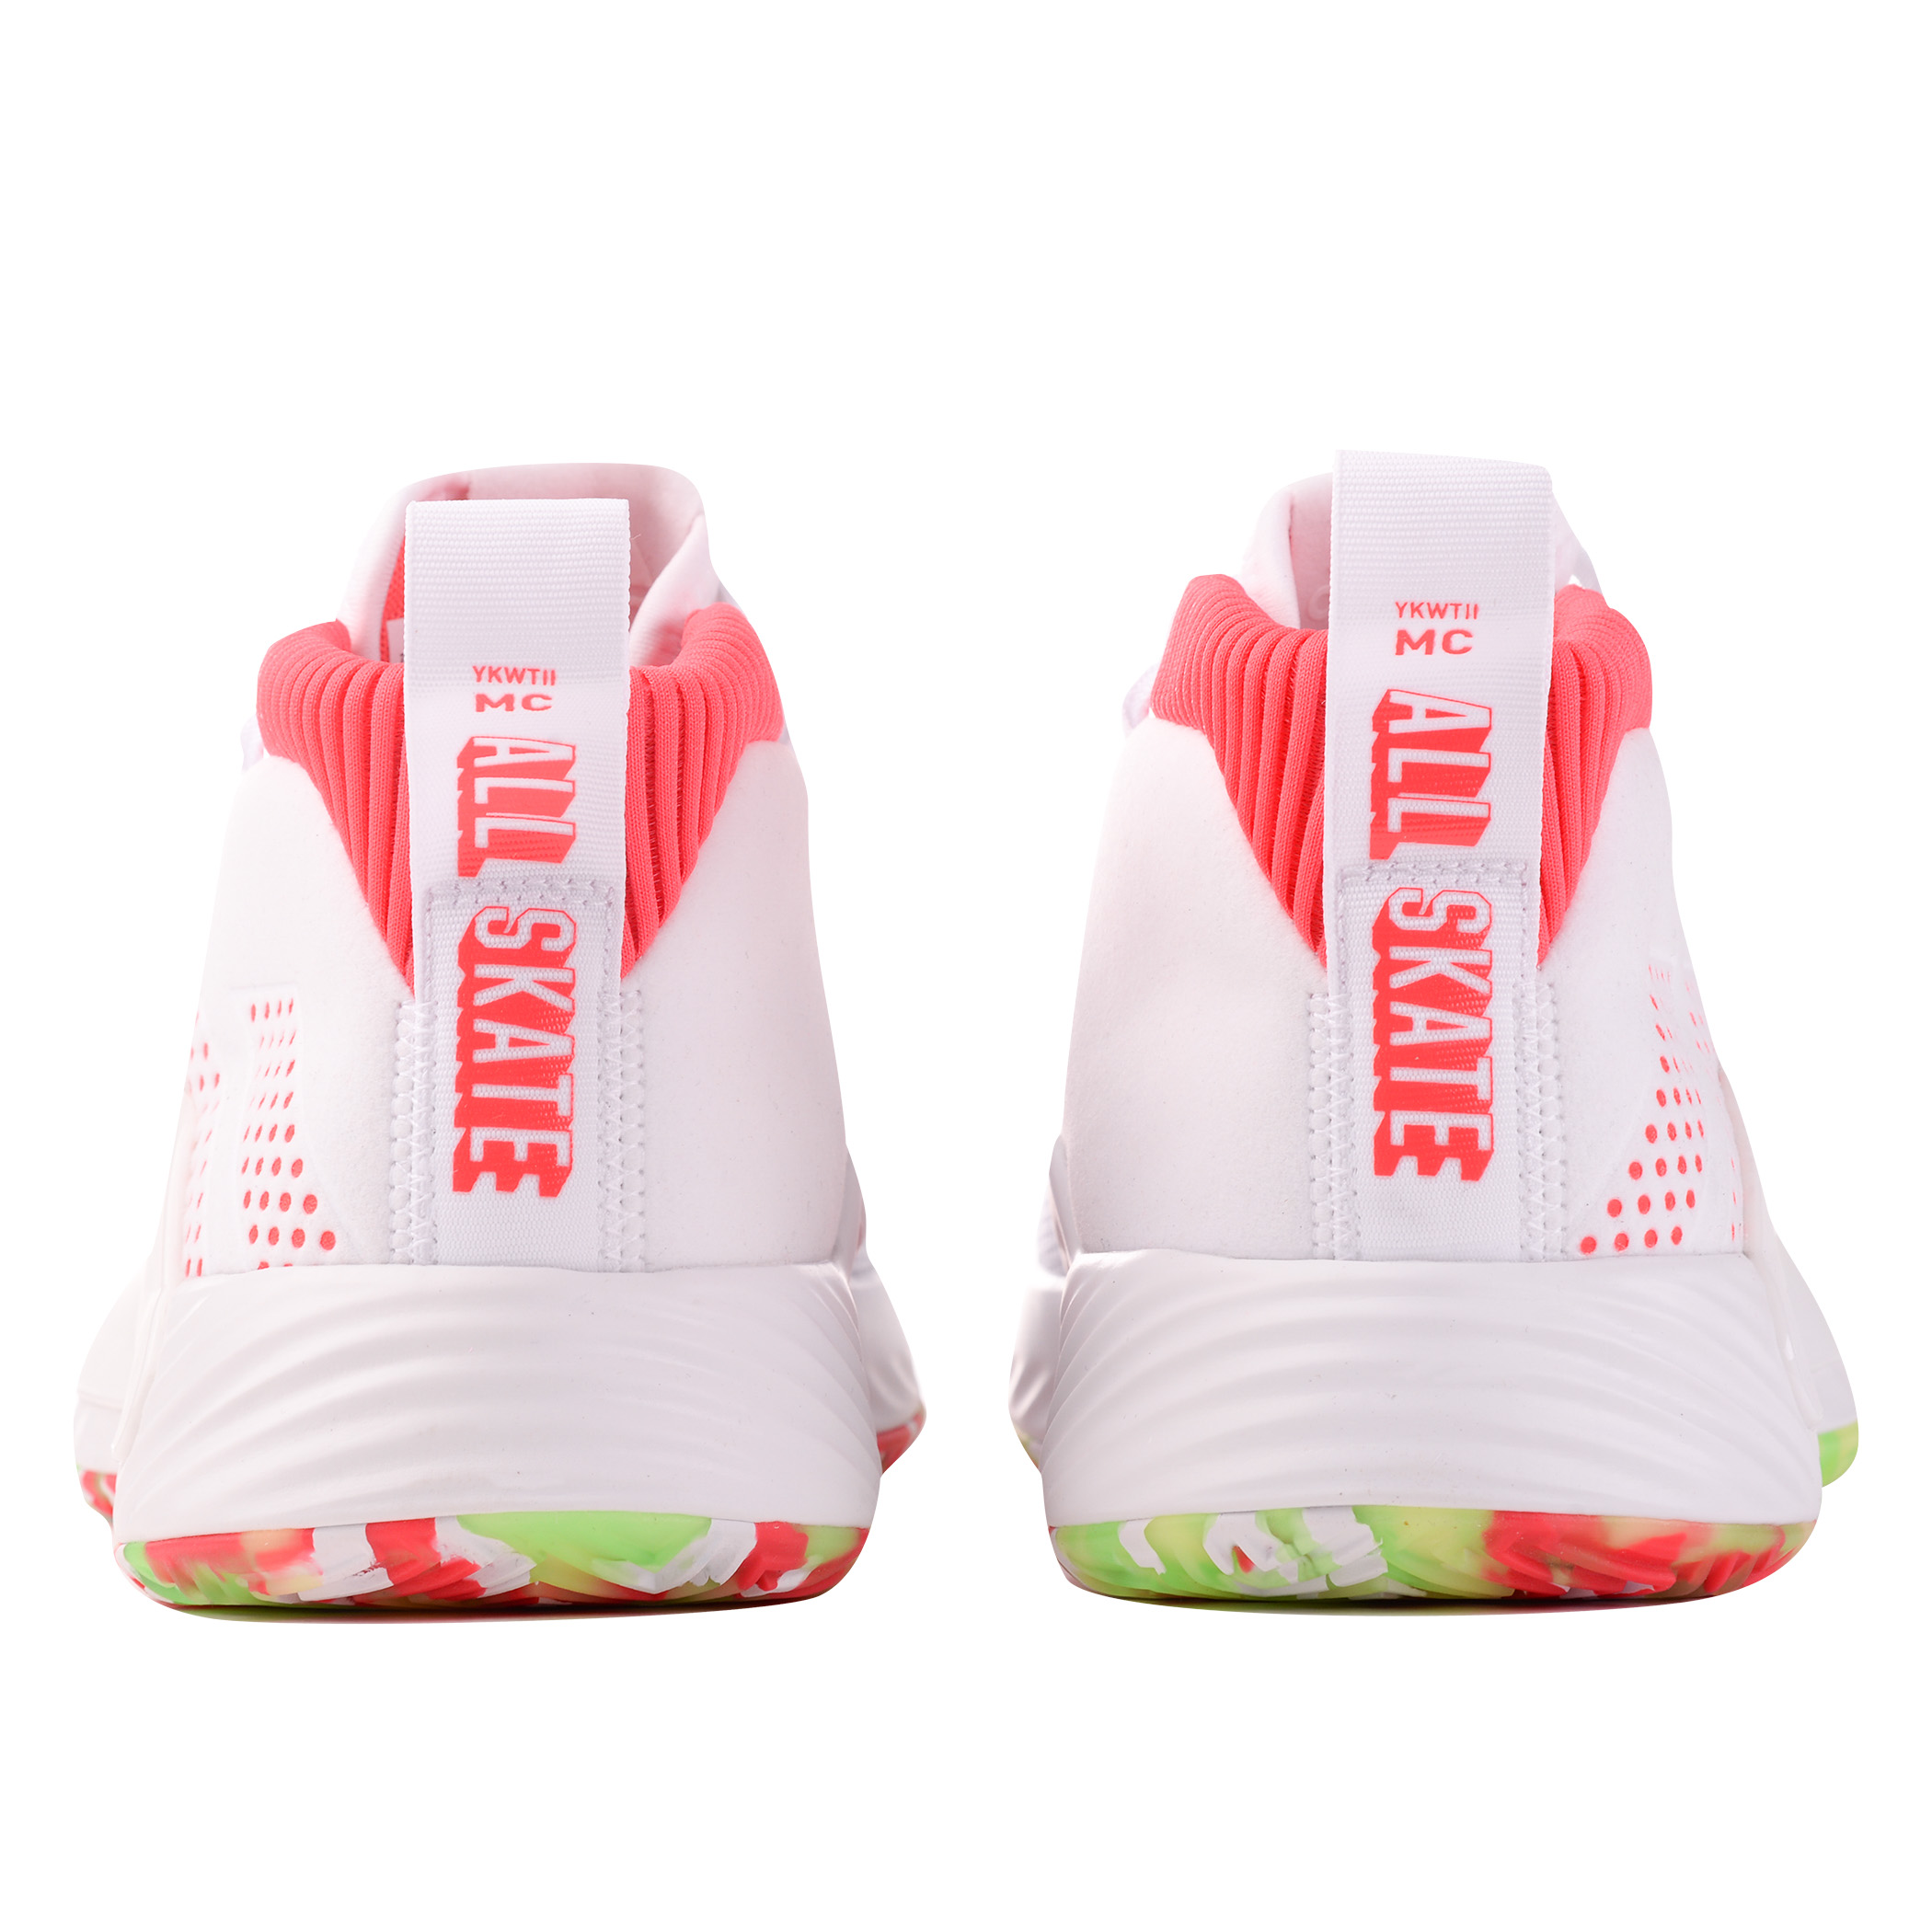 c9d748ca Мужские кроссовки adidas Performance Dame 5 Ftwr White/Shock Red/Crystal  White - фото